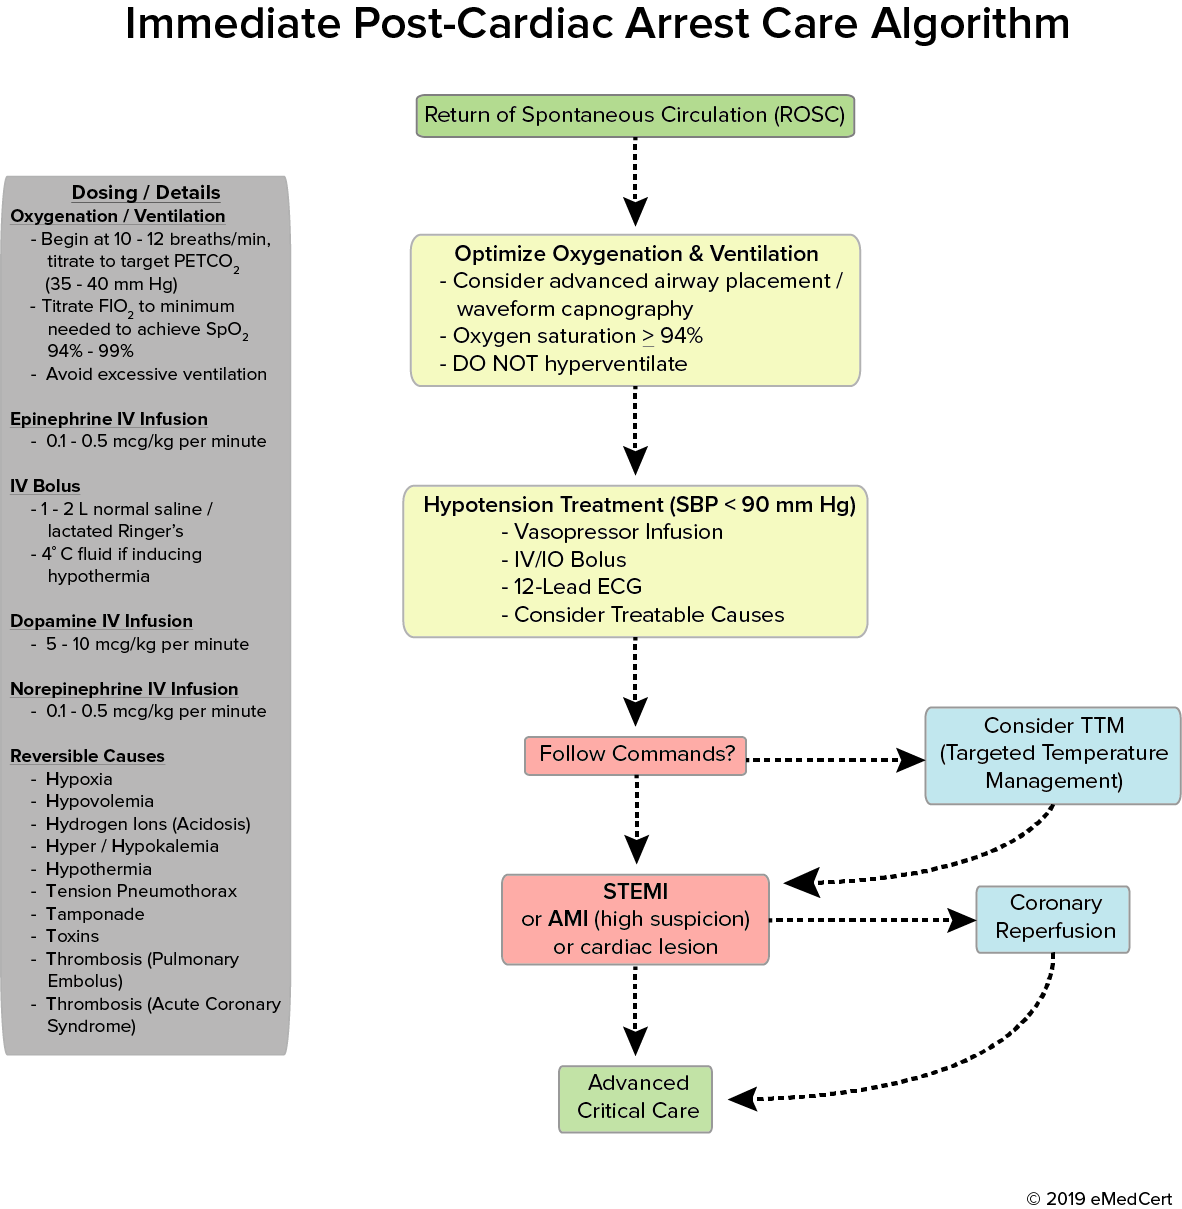 ACLS Immediate Post-Cardiac Arrest Care Algorithm